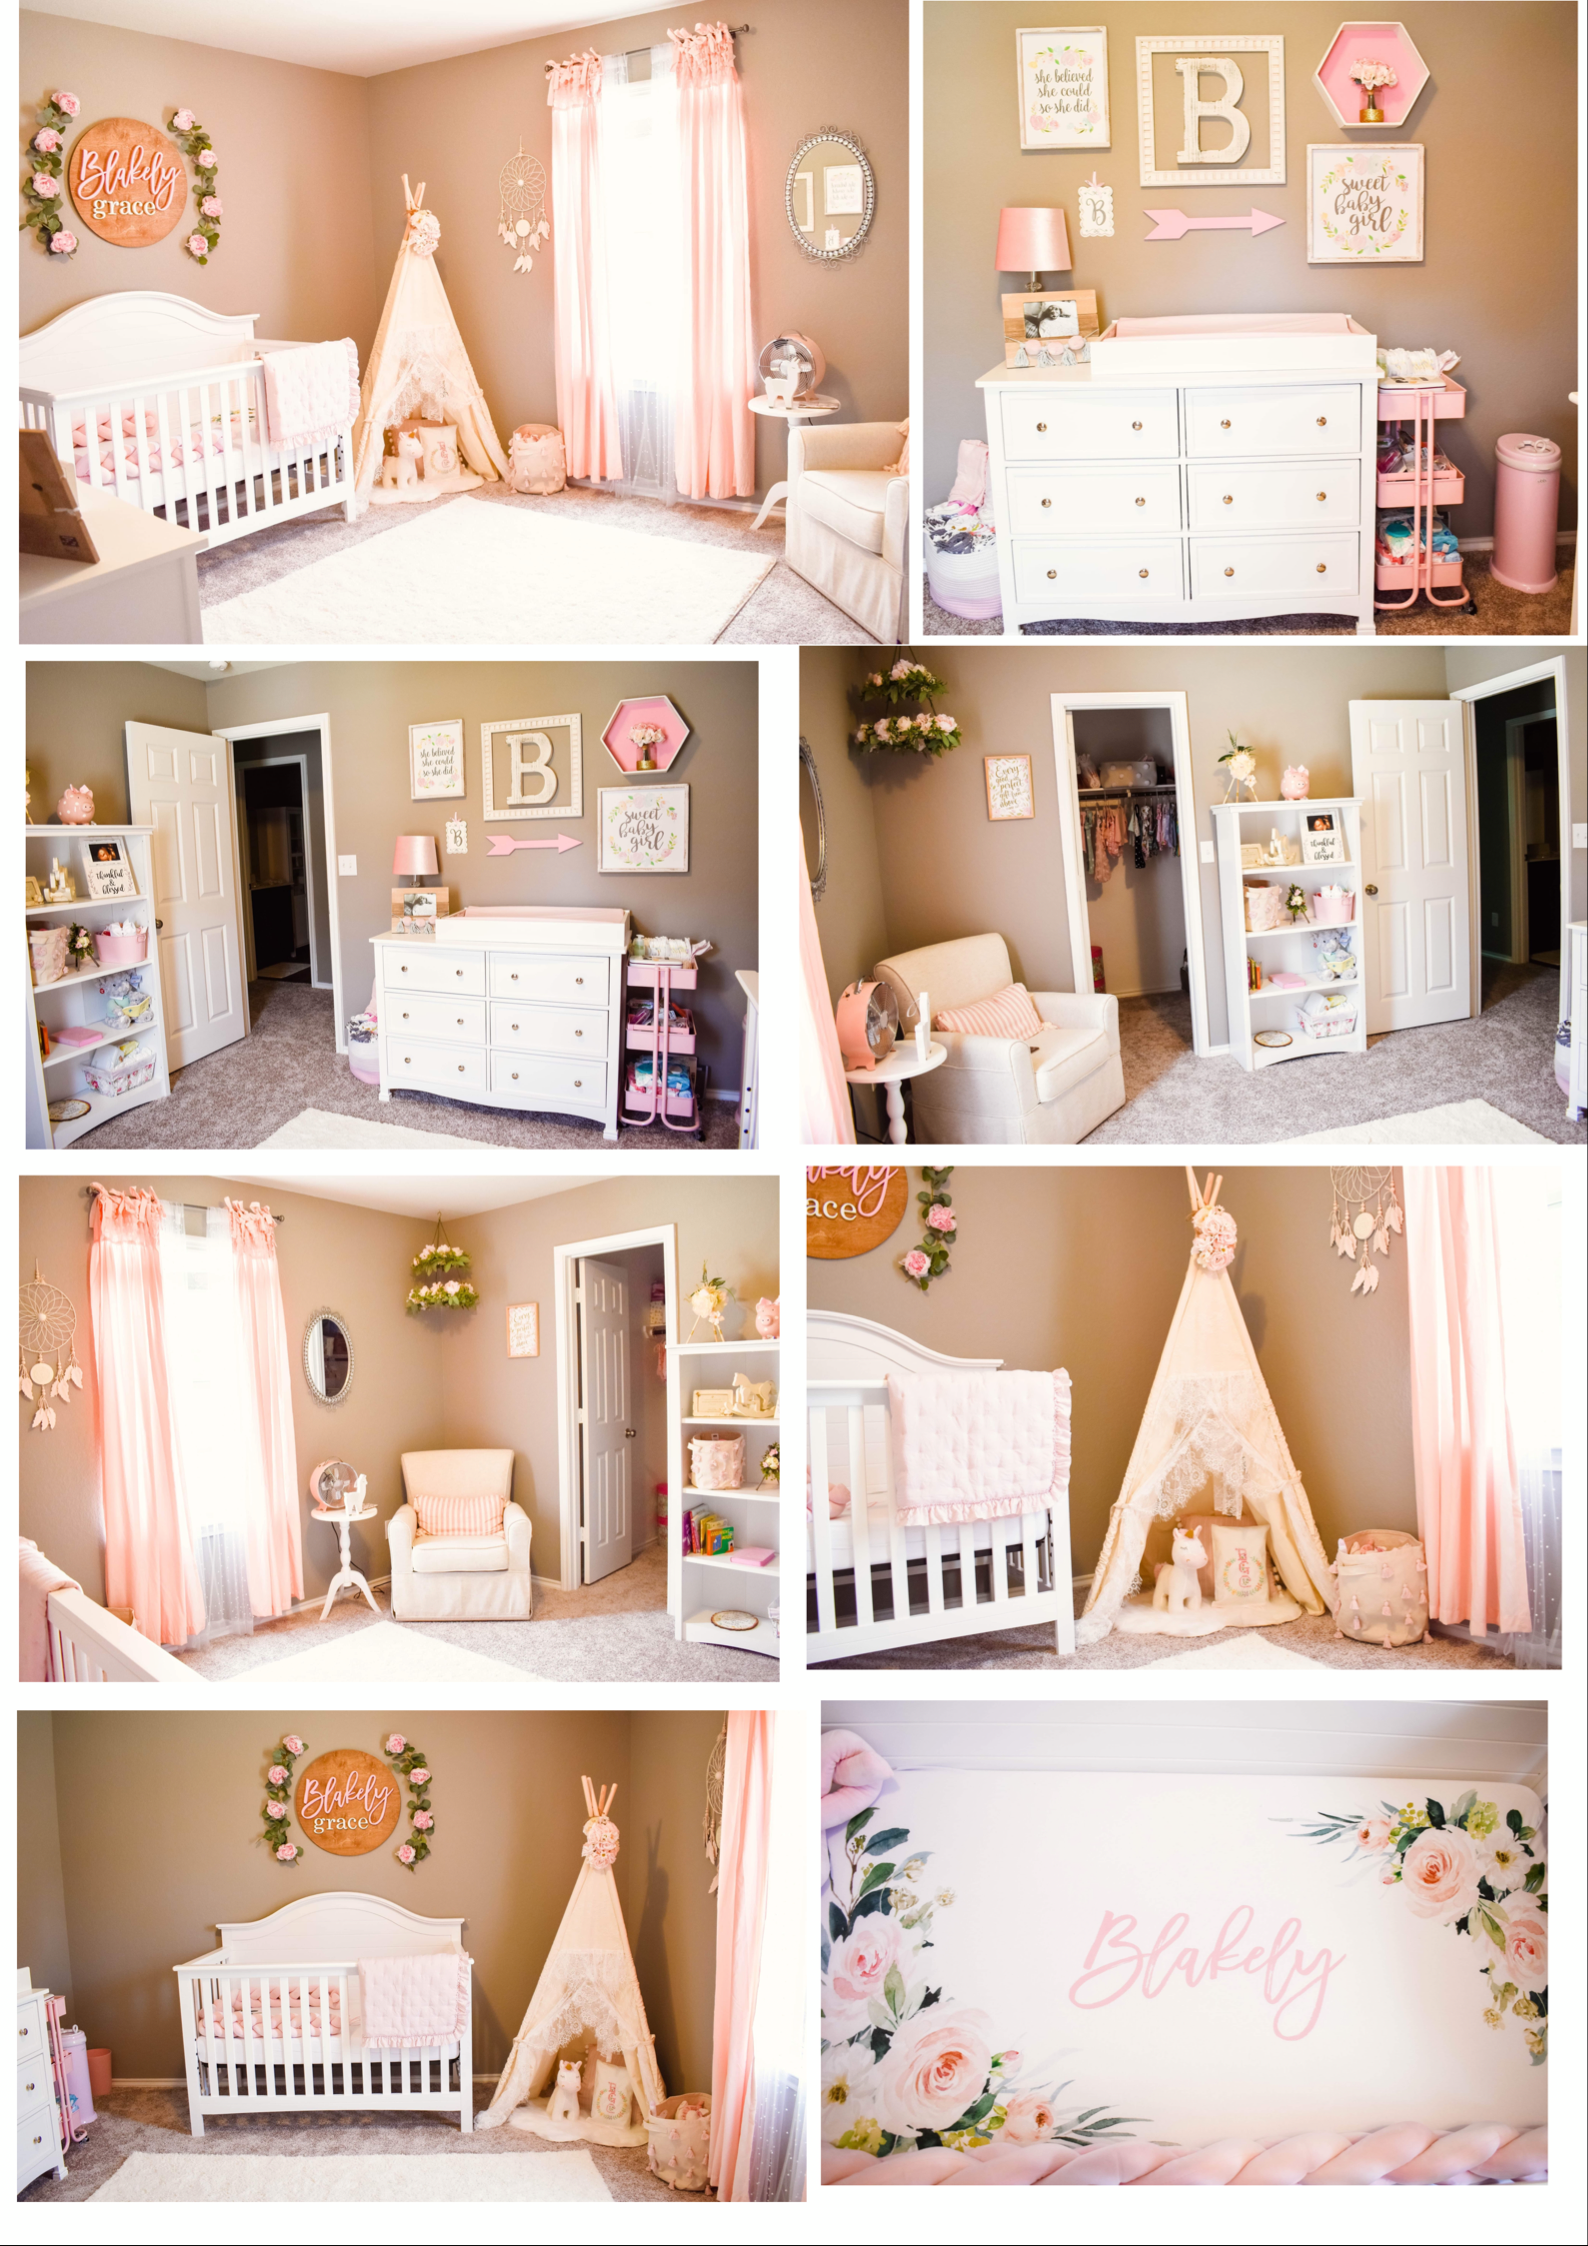 Girl Nursery Ideas Pink Gray And White Colors Boho Shabby Chic Baby Girl Nursery Pink Boho Baby Girl Nursery Shabby Chic Baby Girl Nursery